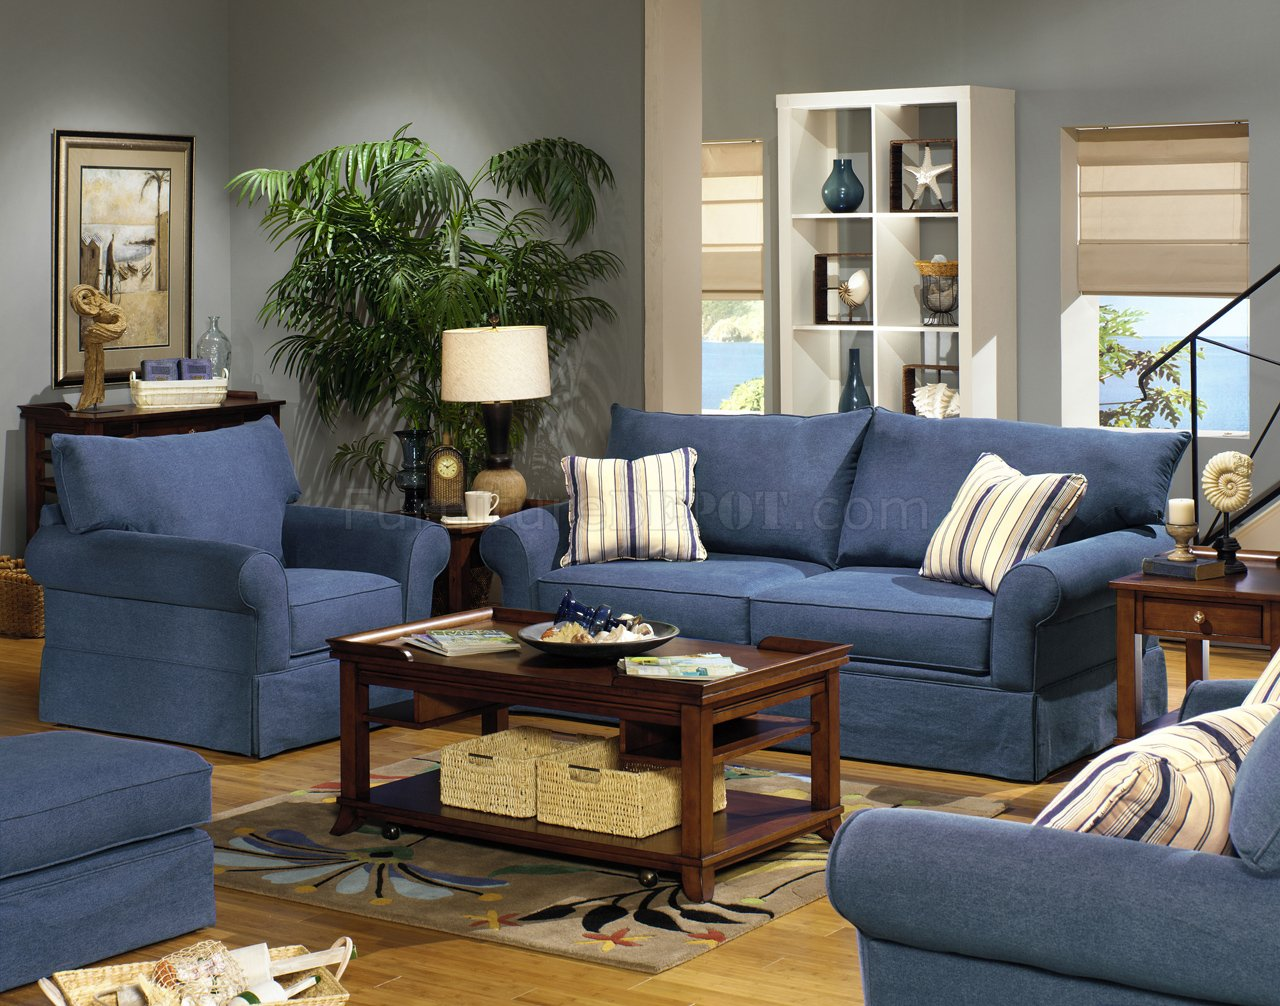 blue sectional sofa blue velvet couches royal blue couches living